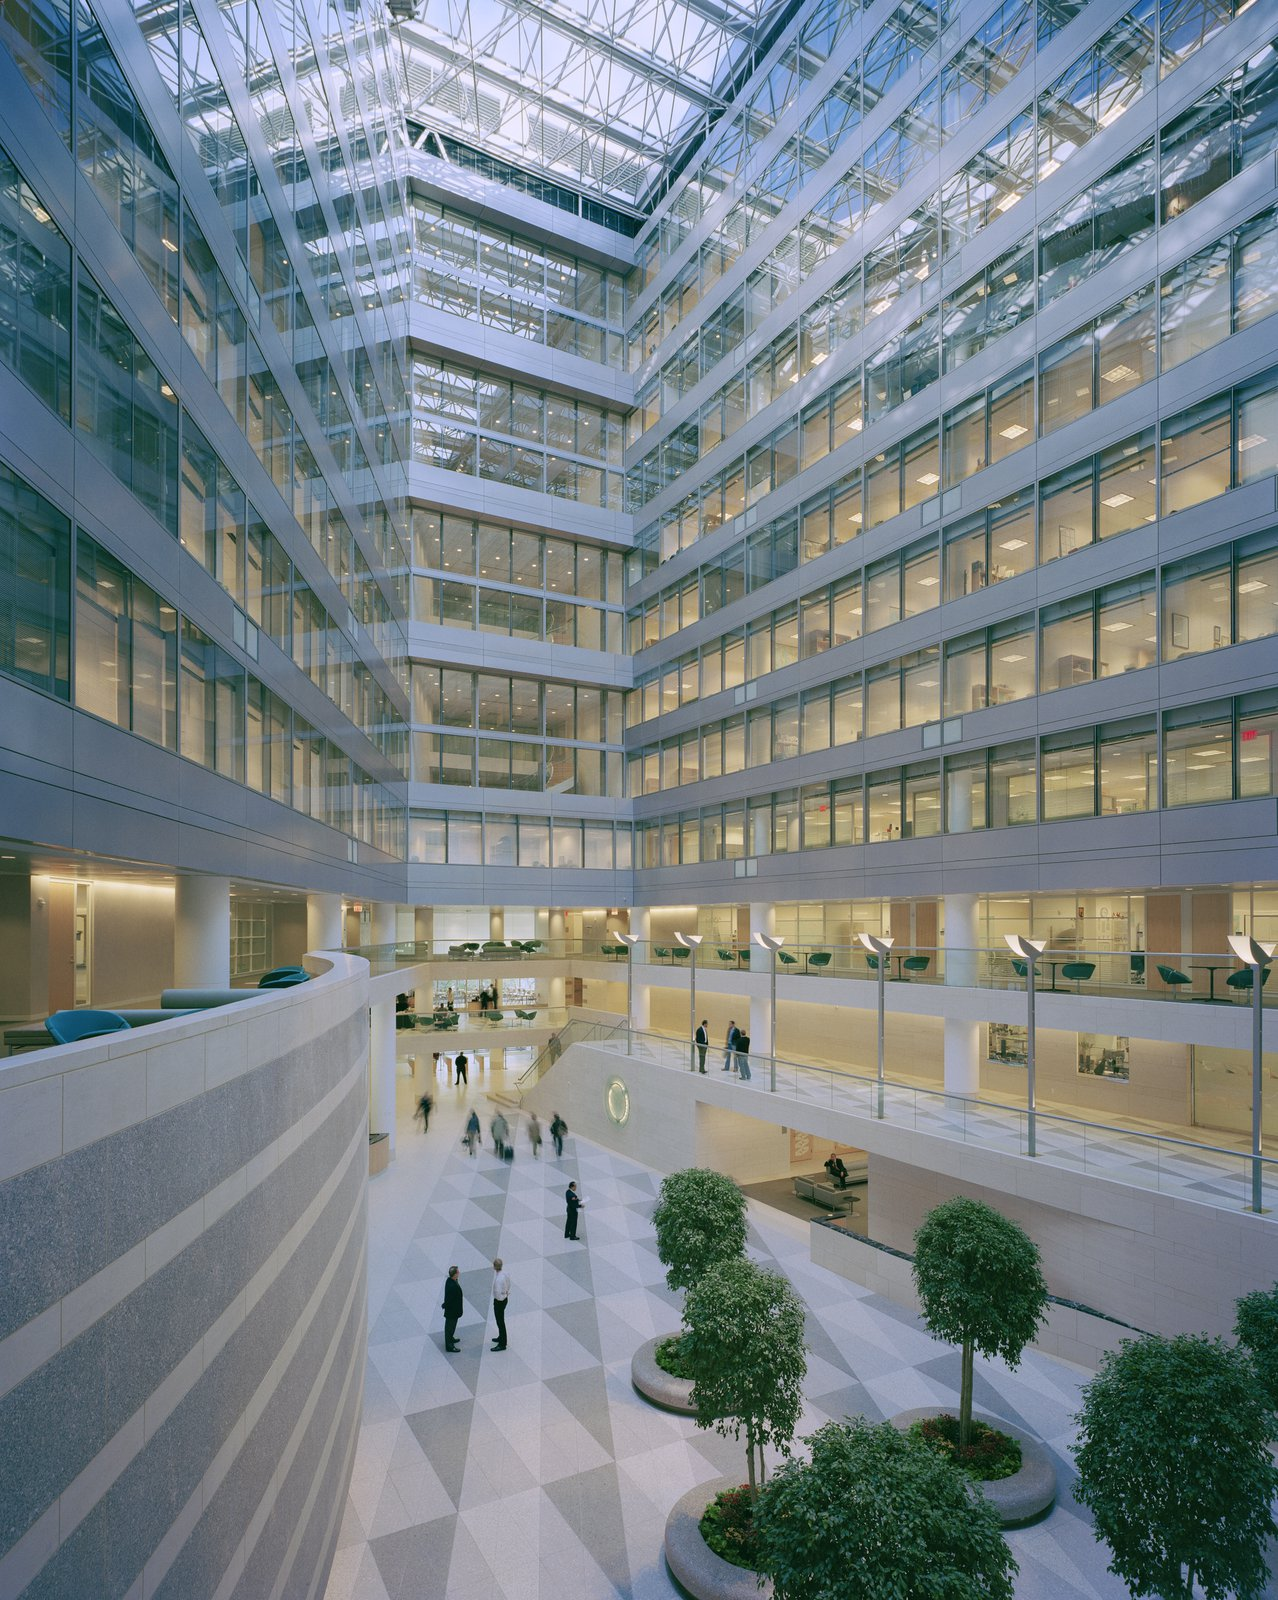 International monetary fund headquarters 2 pei cobb freed partners material transparency emphasizes a feeling of openness upon entry a grand skylit central atrium brings natural light to interior offices while providing a sciox Images